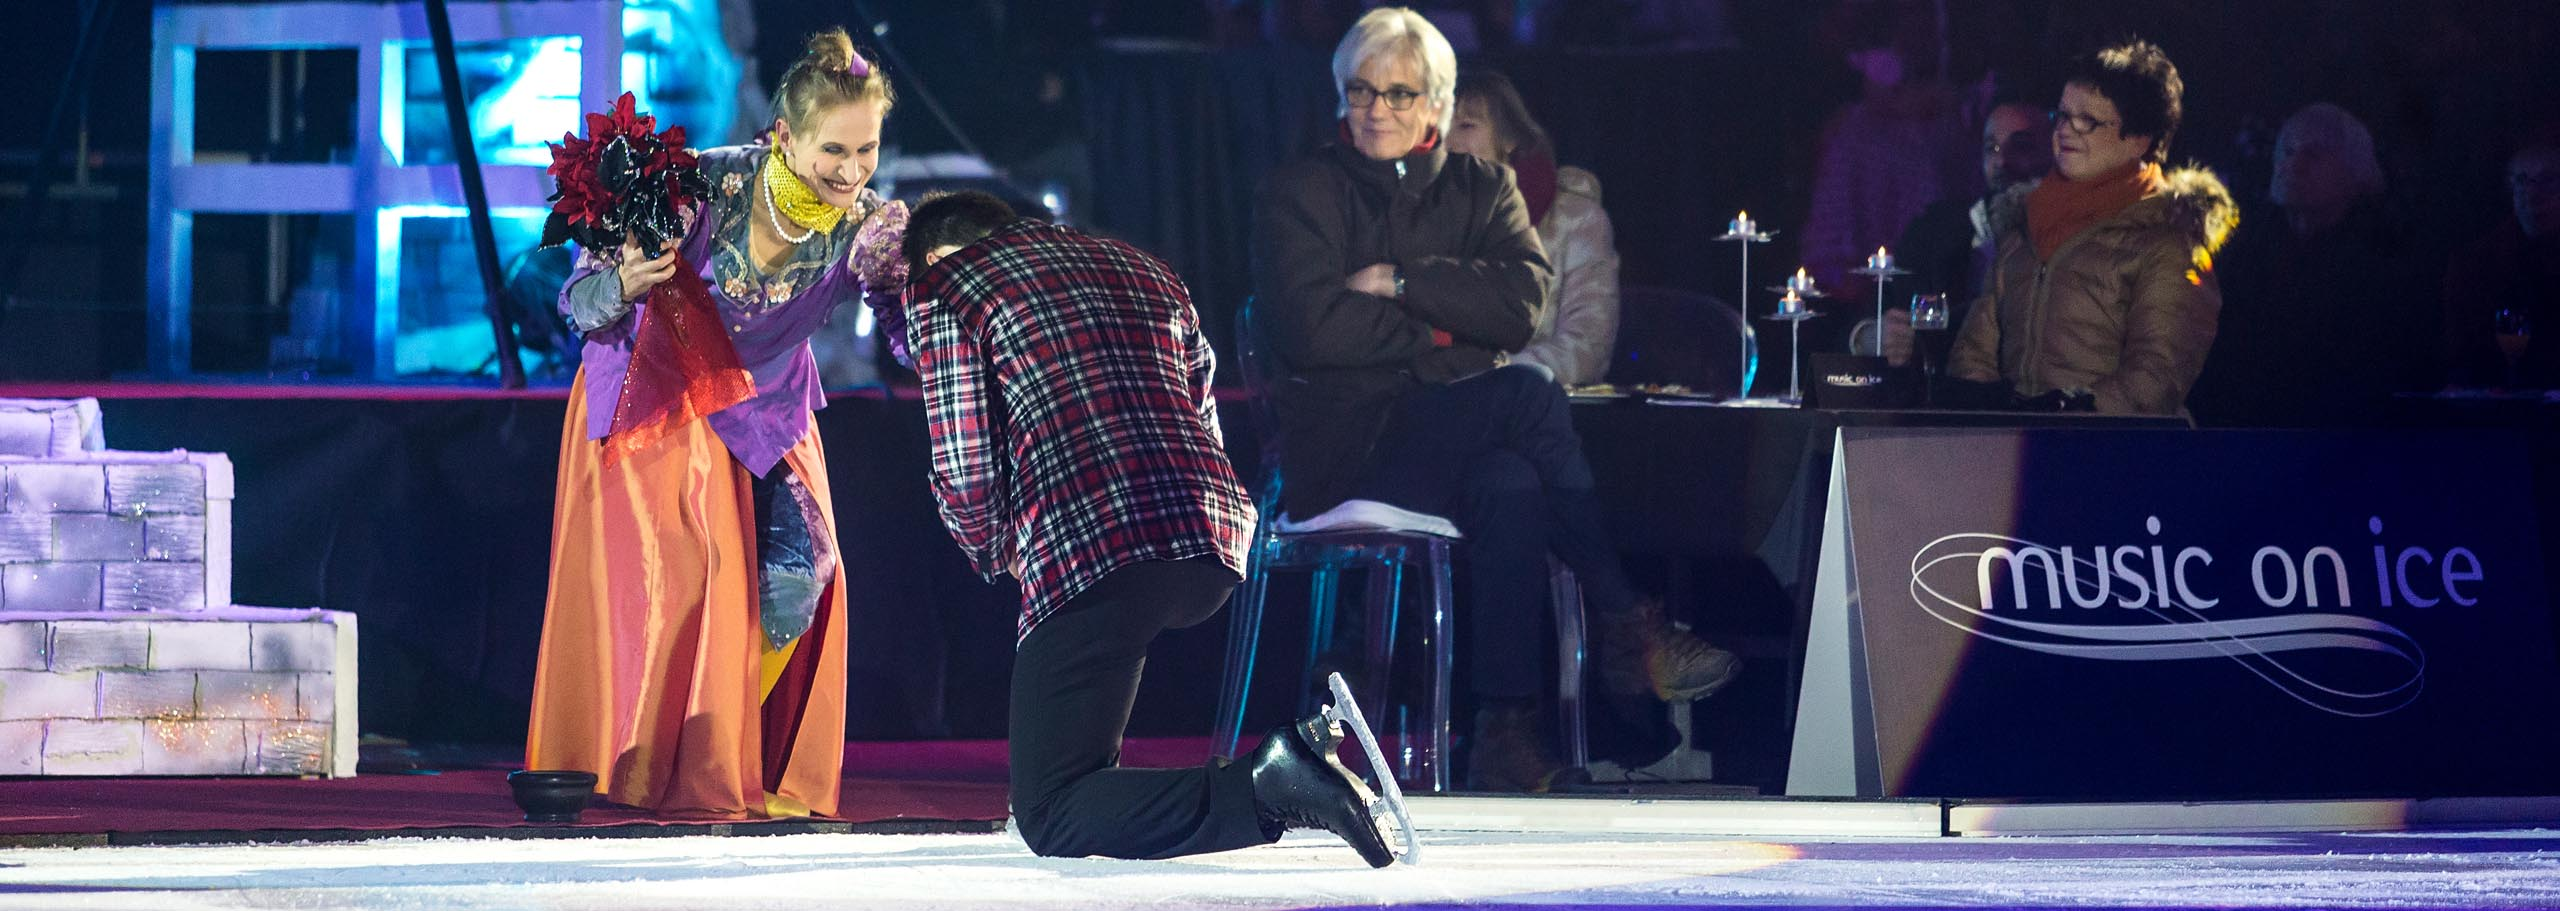 Masha Dimitri Samuel Contesti Music on Ice